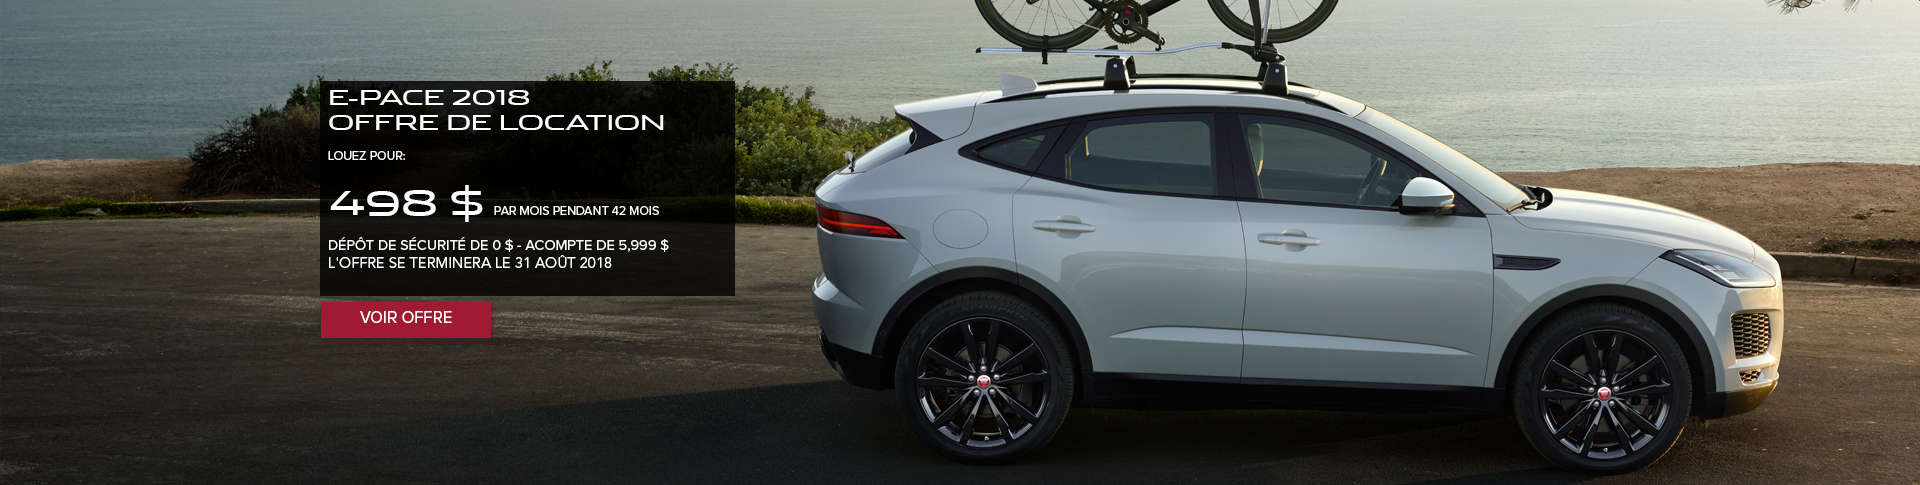 August E-PACE Offer